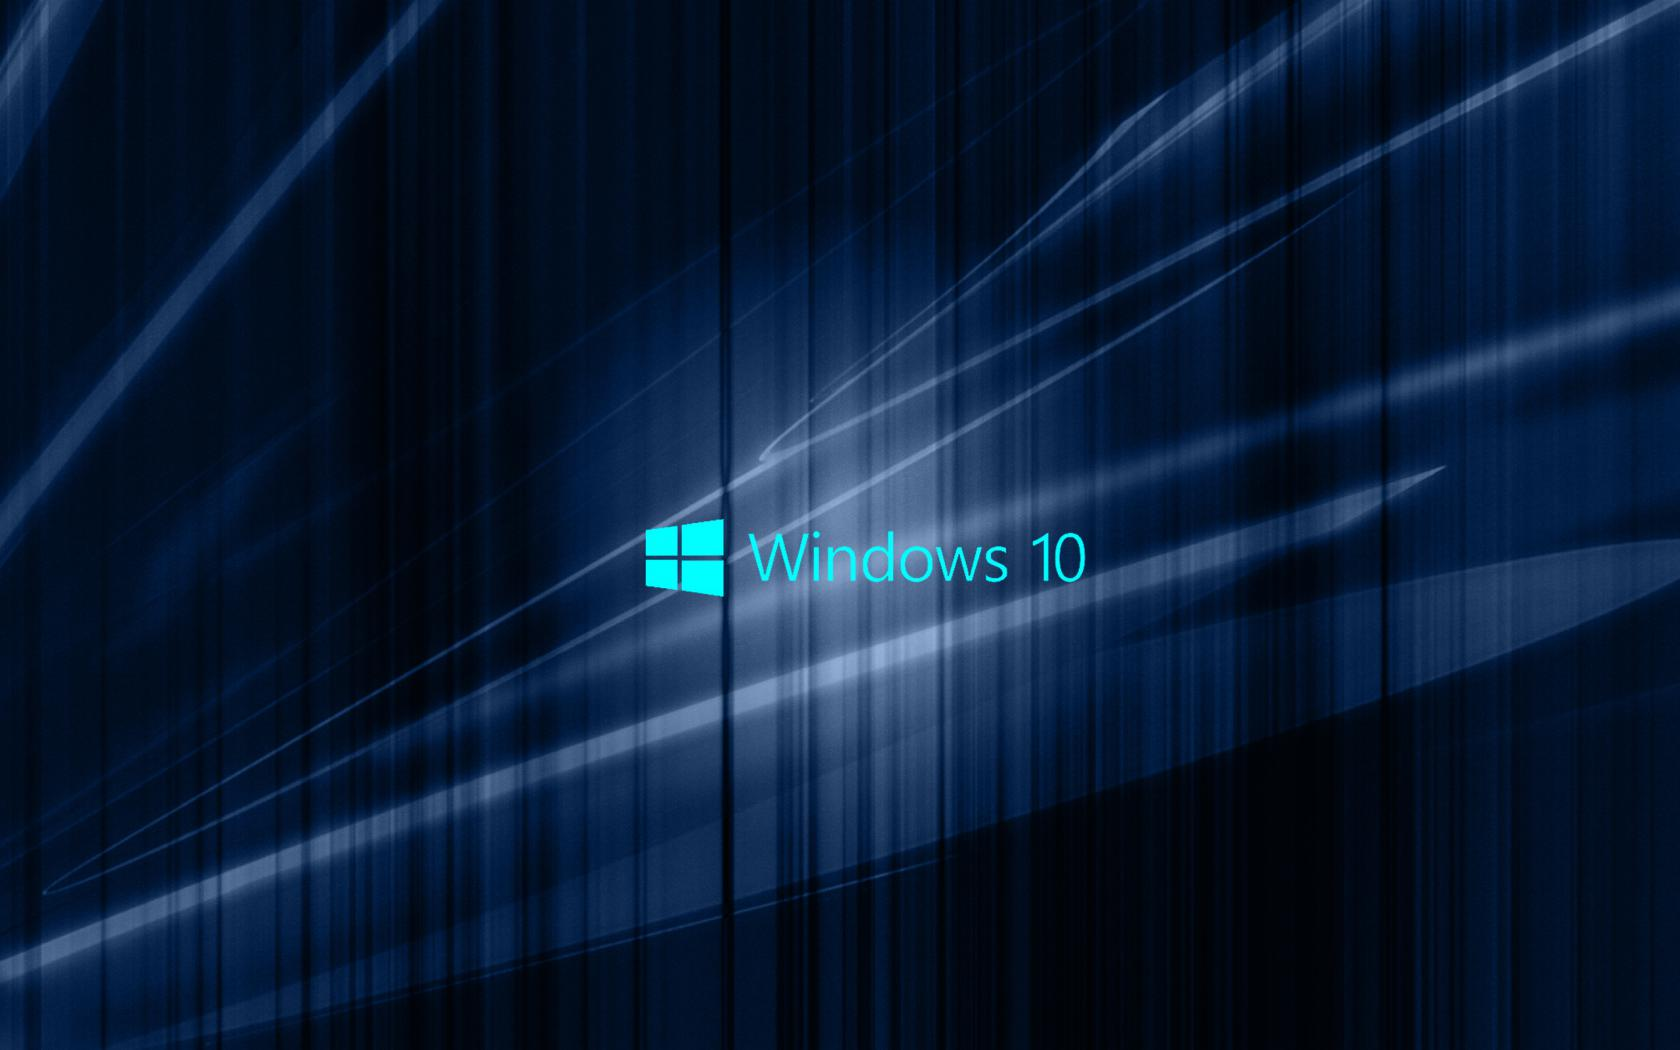 Windows 10 Wallpaper with Blue Abstract Waves HD Wallpapers for 1680x1050